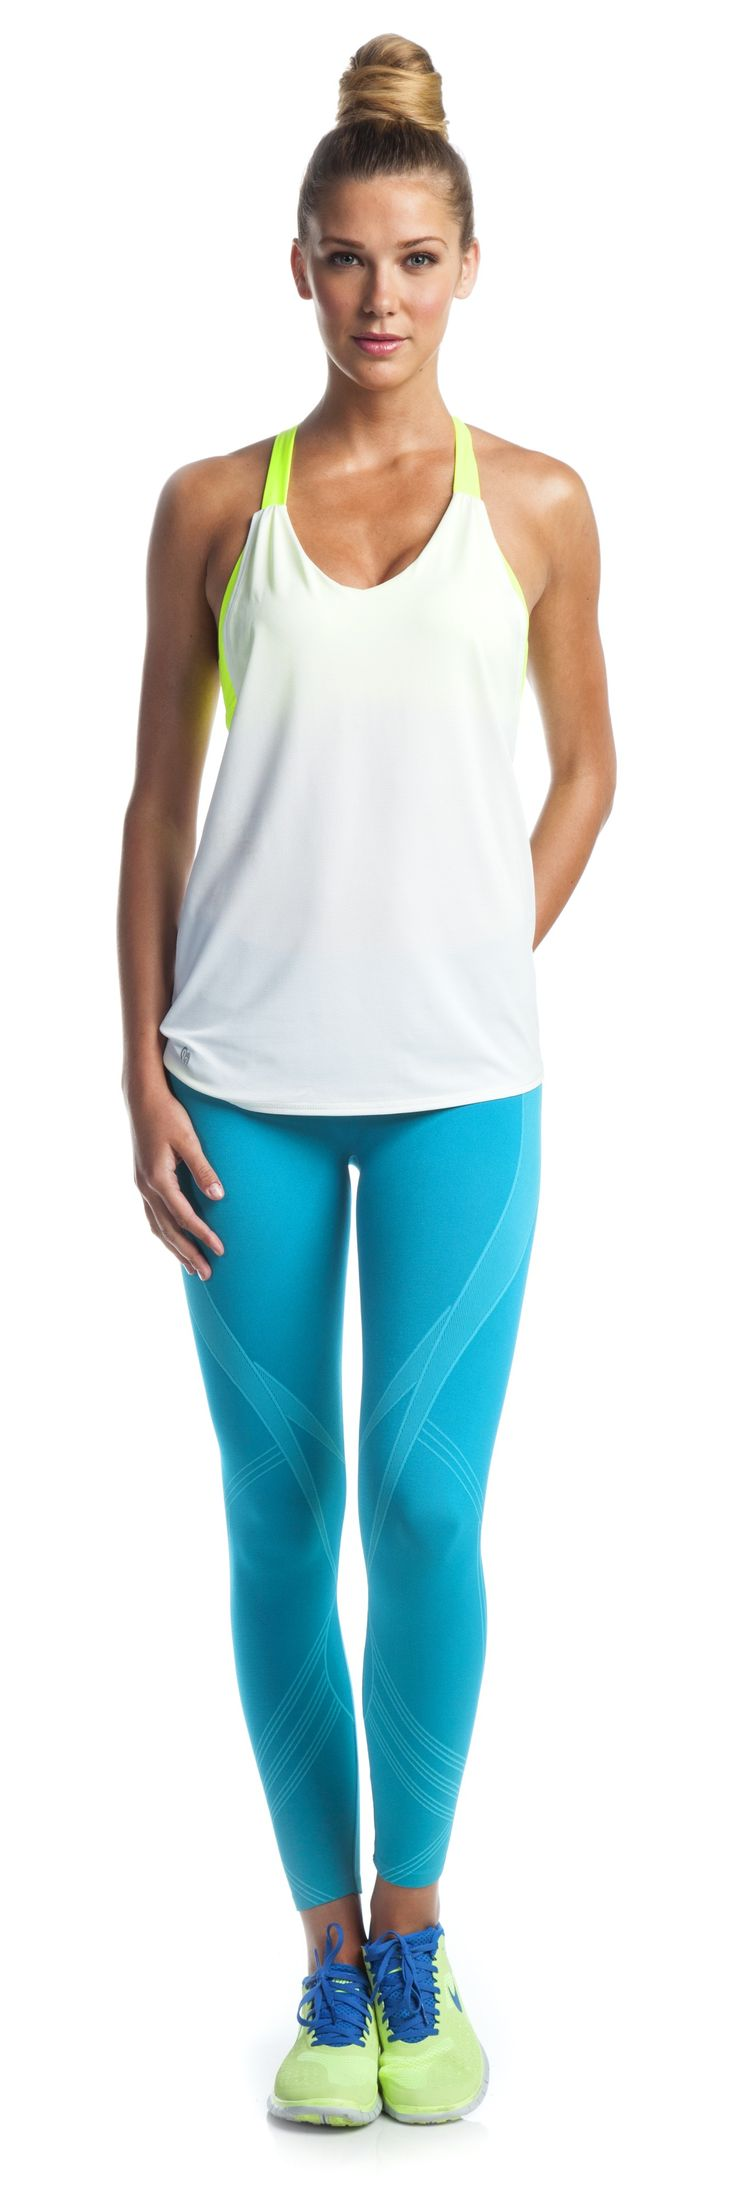 http://alizle.com/ Electric Love Capri by Ellie: These leggings fit like a glove and look superfunky. #Ellie